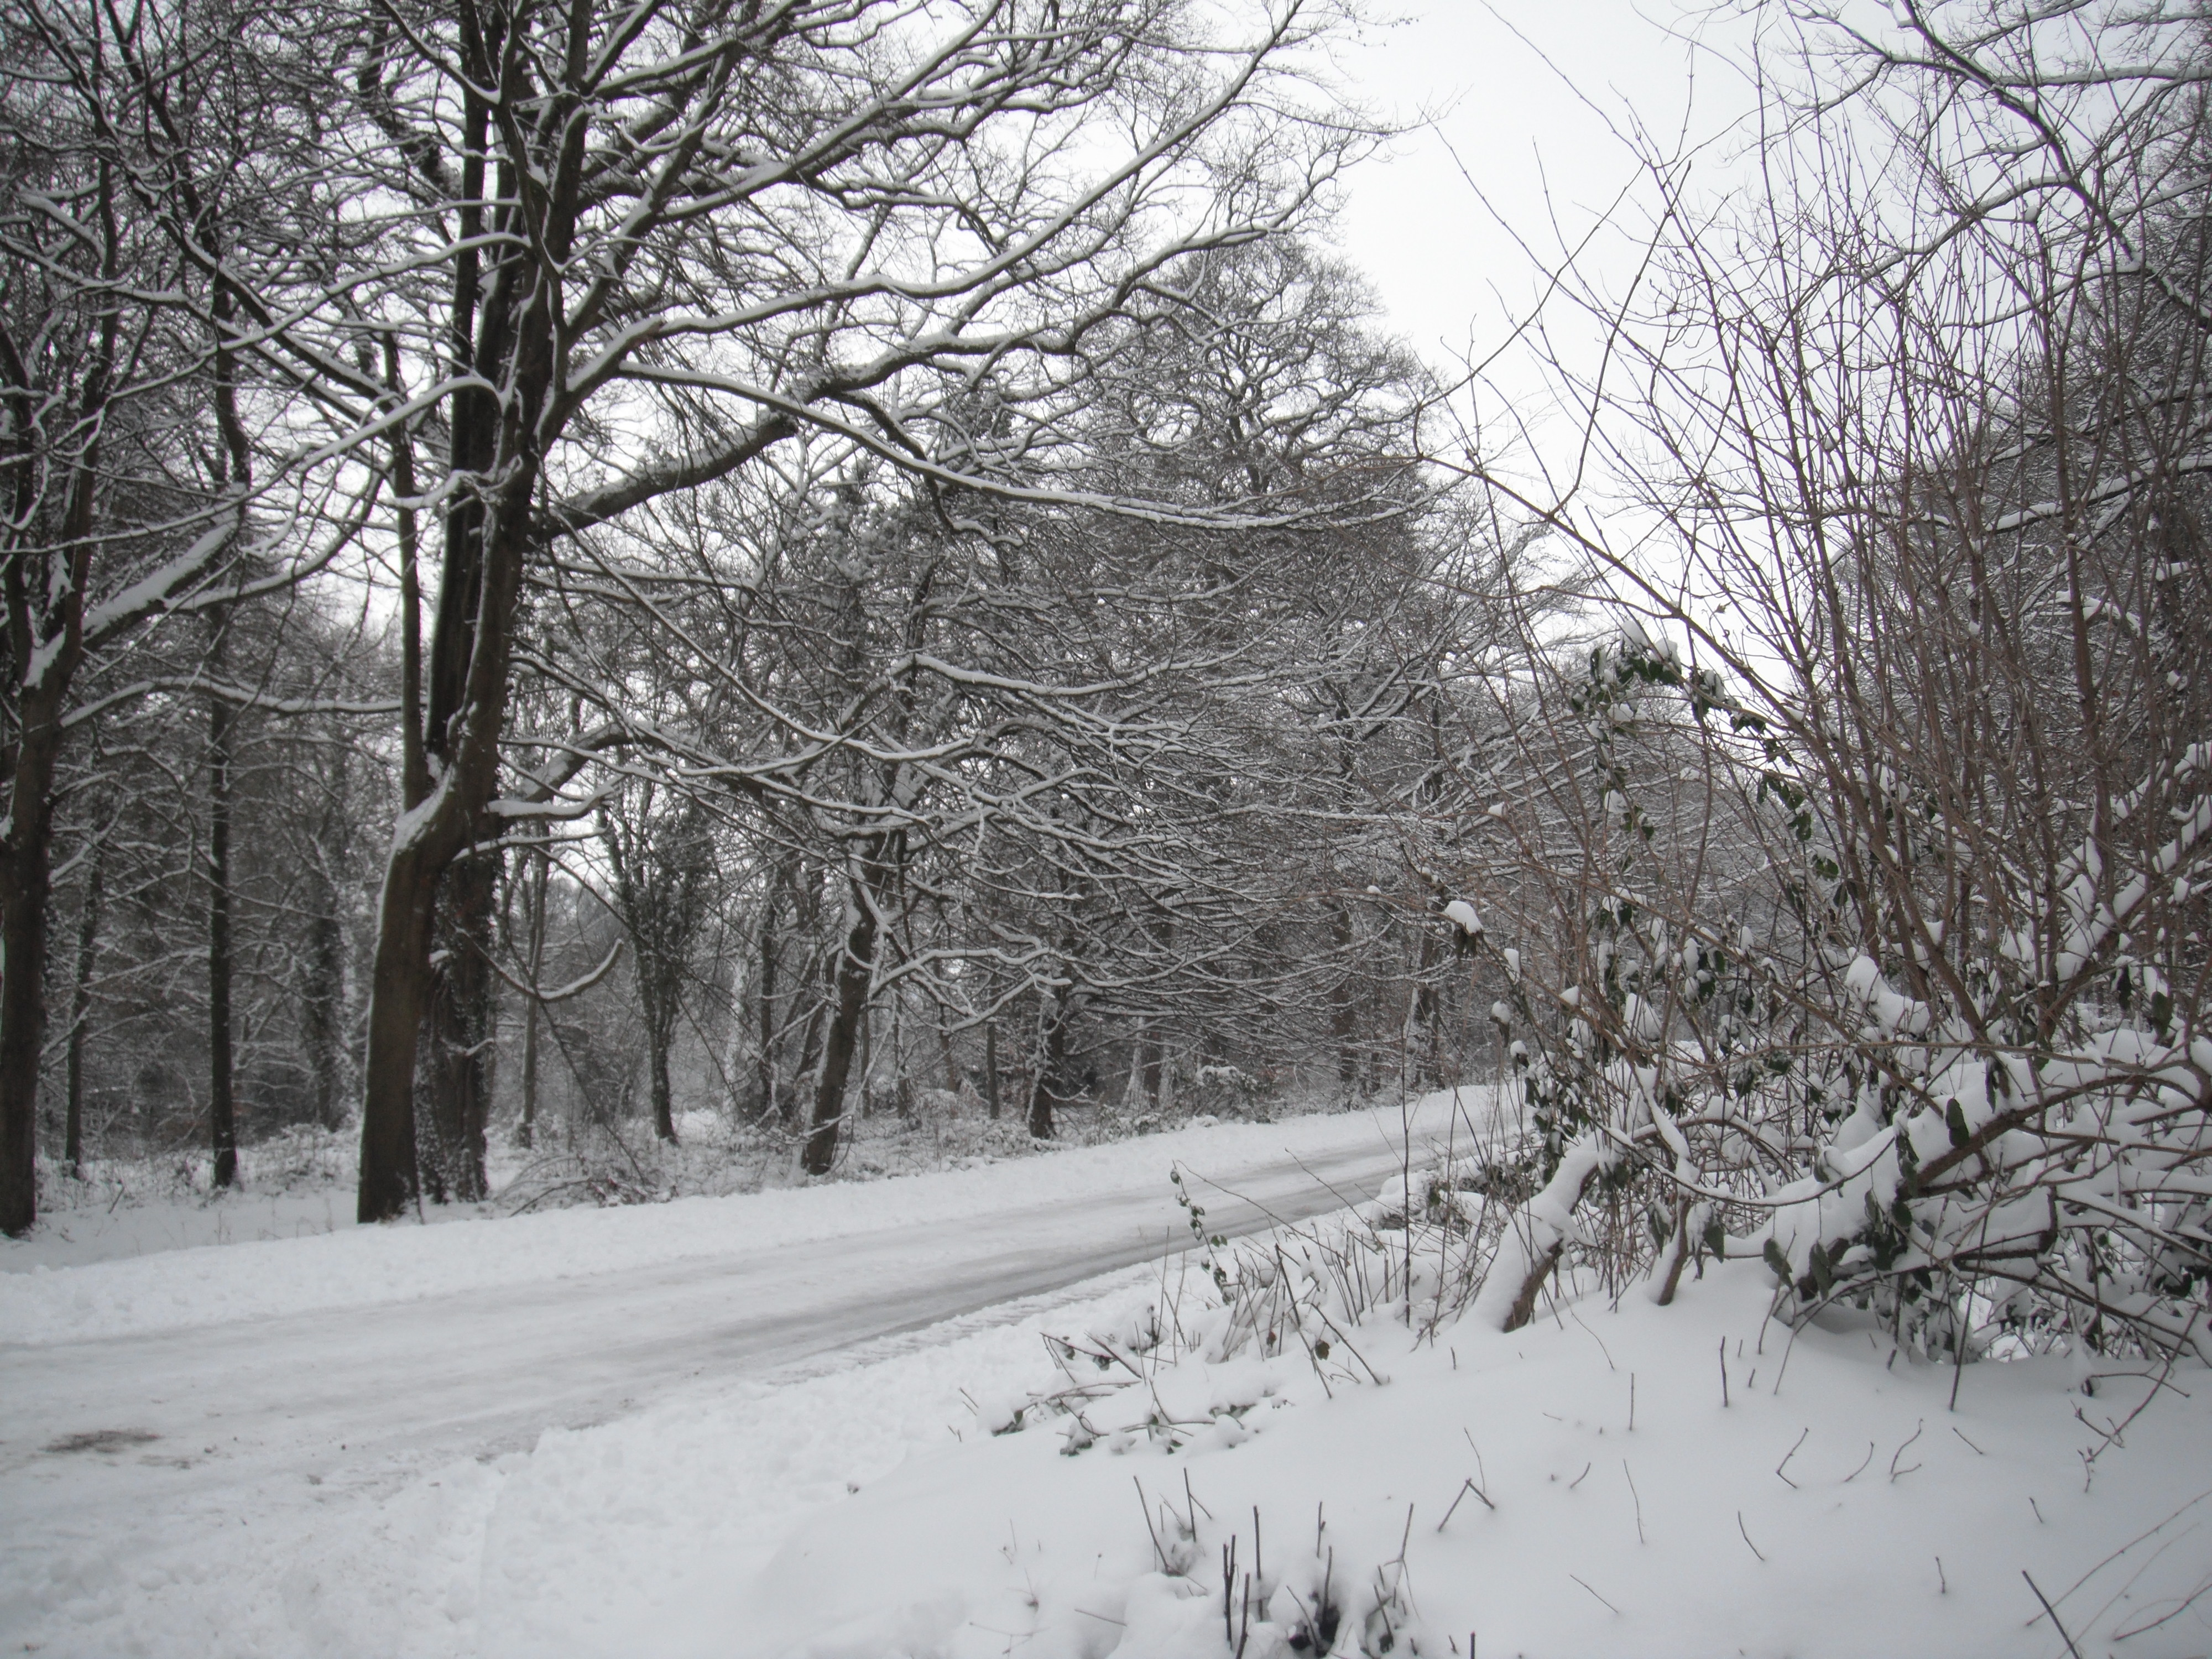 The road to Lea Bailey in the snow